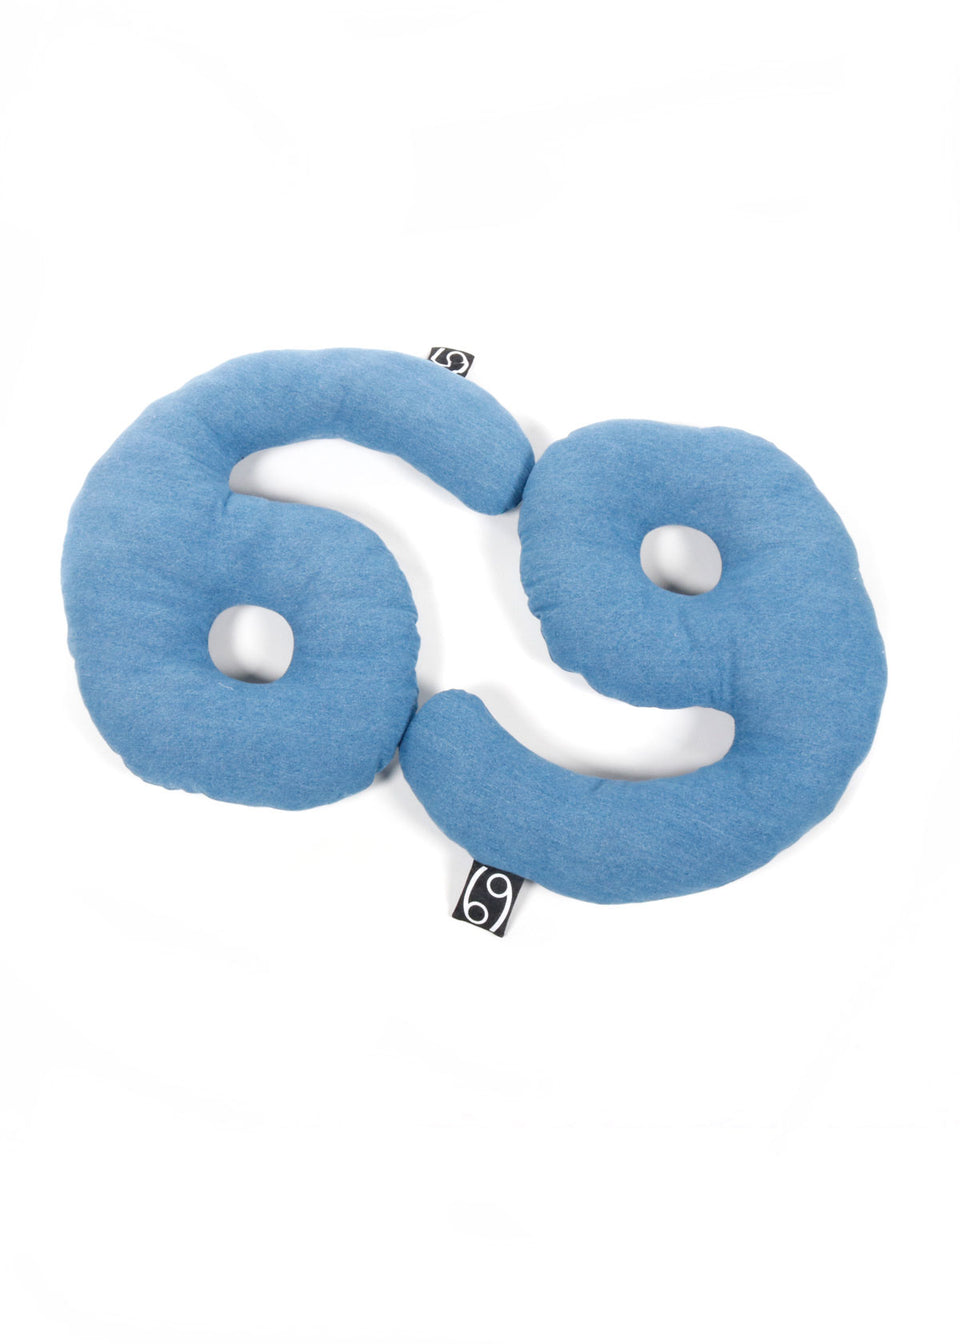 69 Neck Pillows - 69